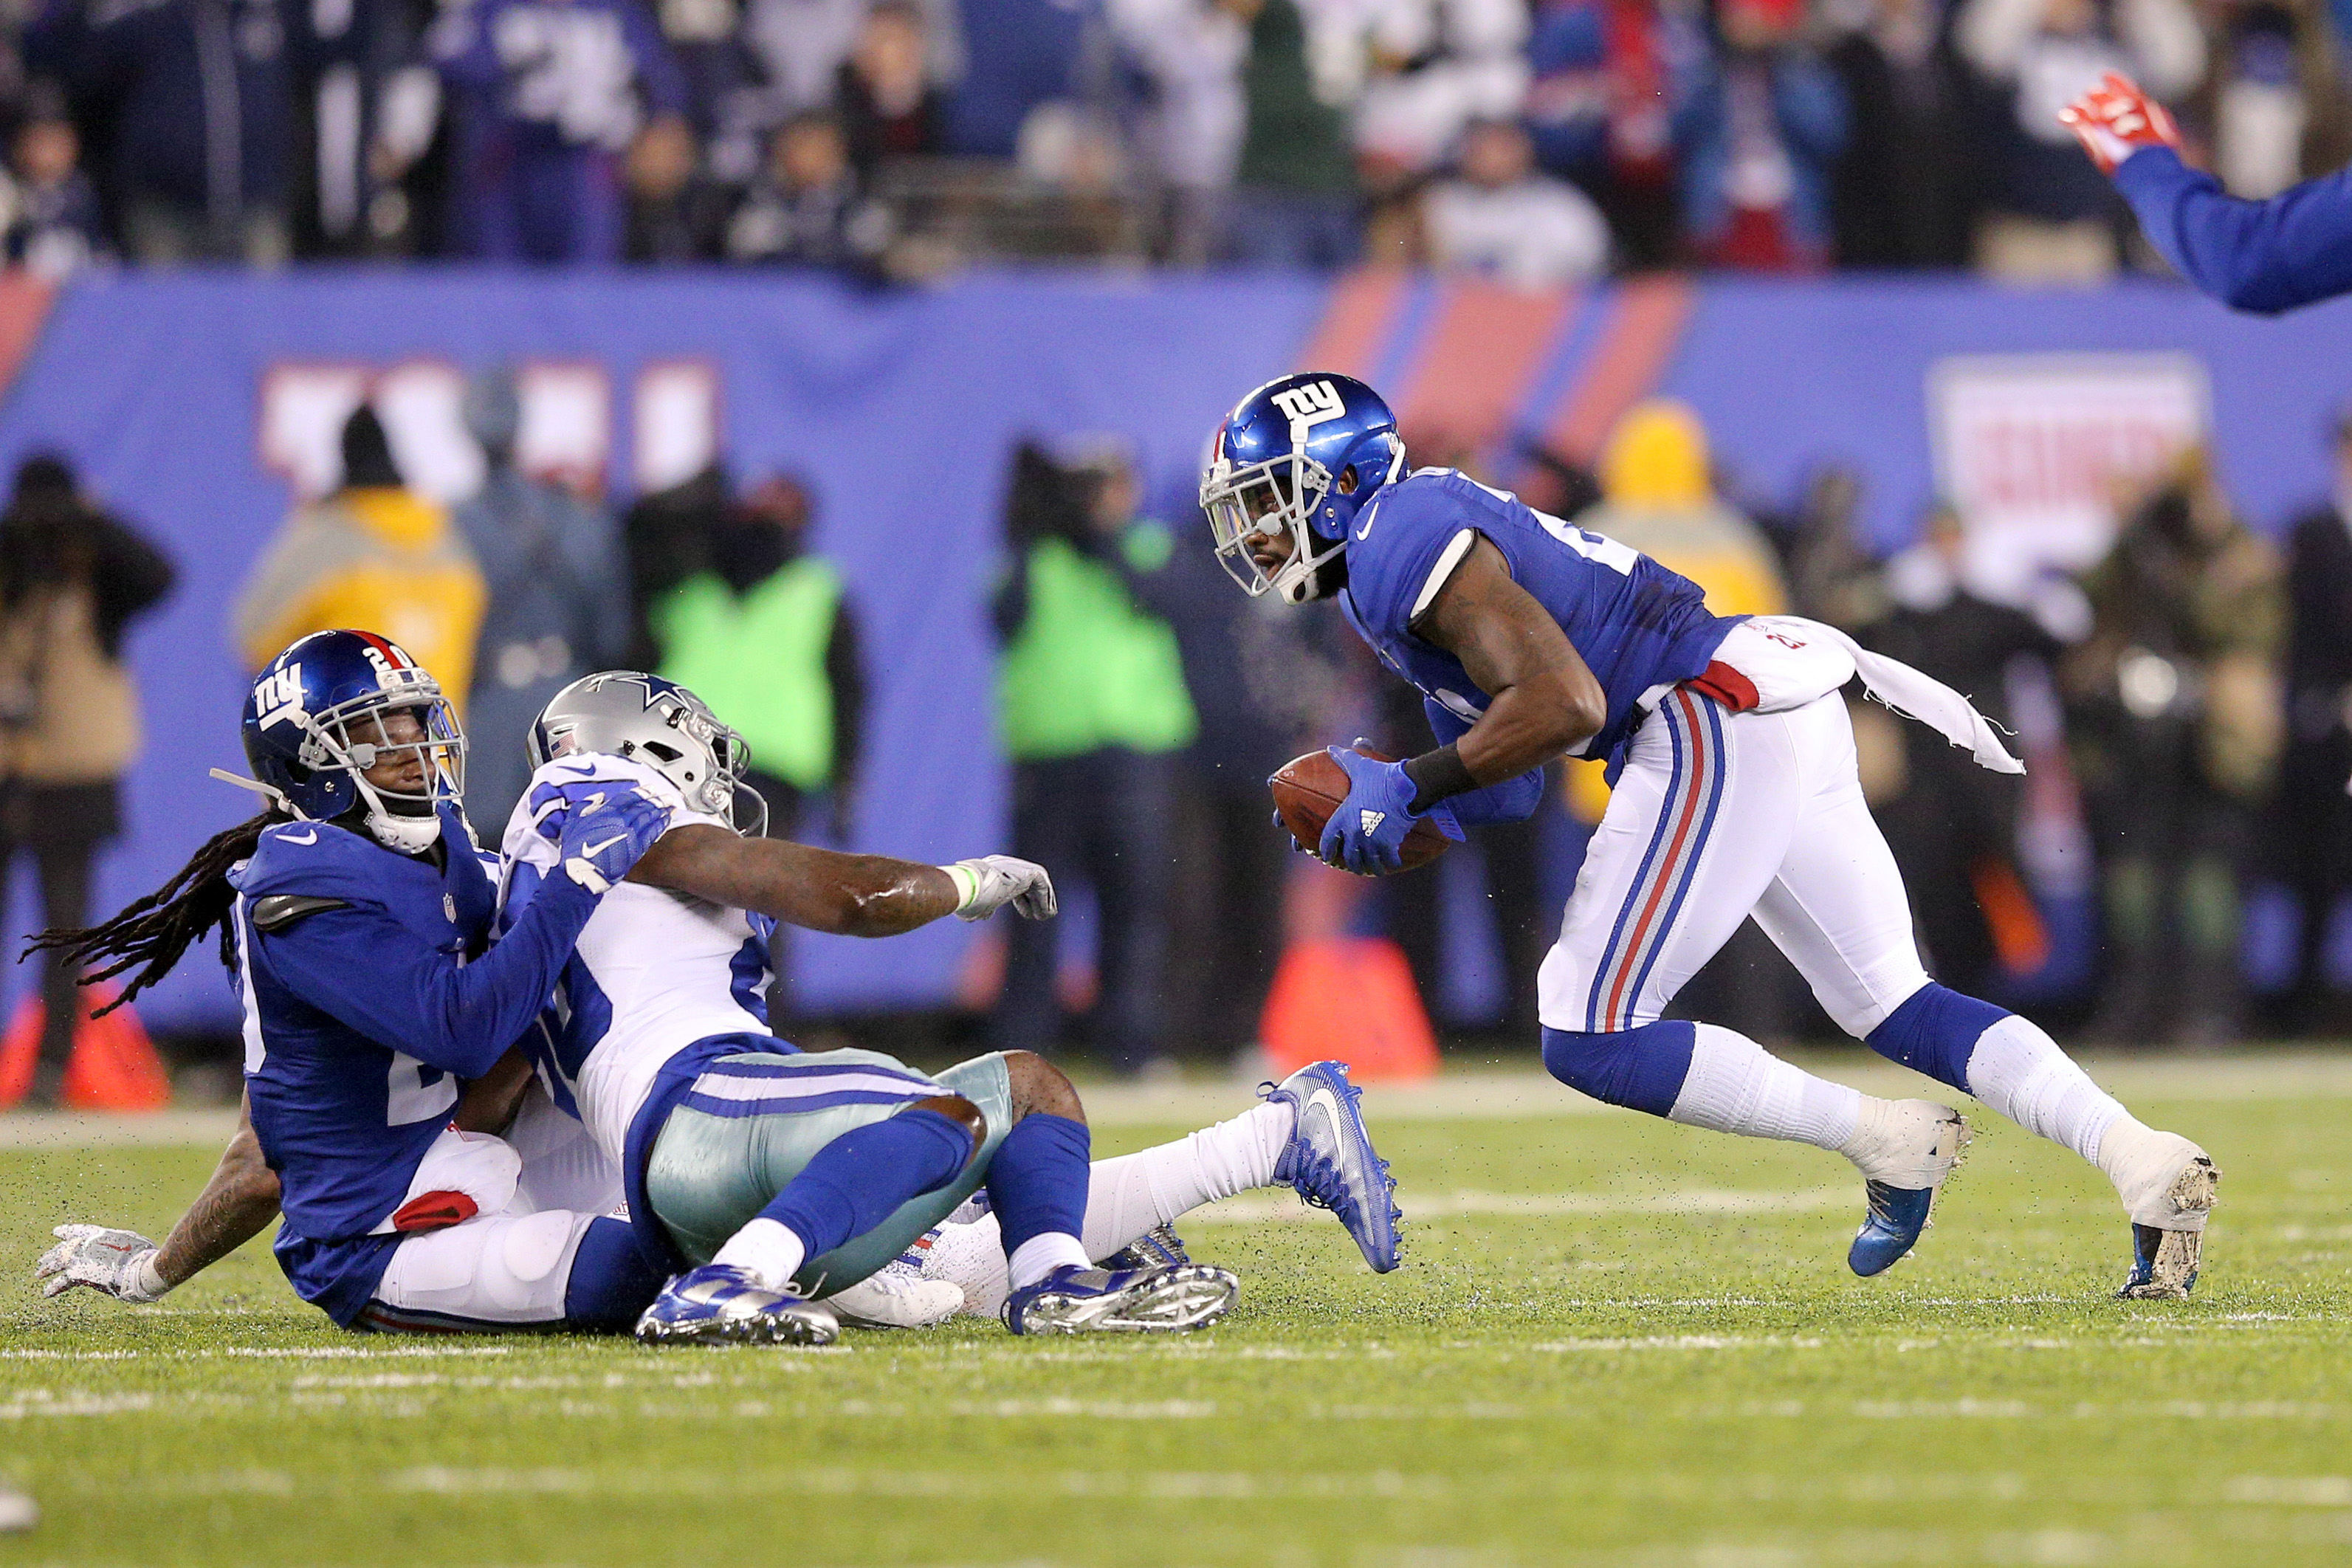 9743329-nfl-dallas-cowboys-at-new-york-giants